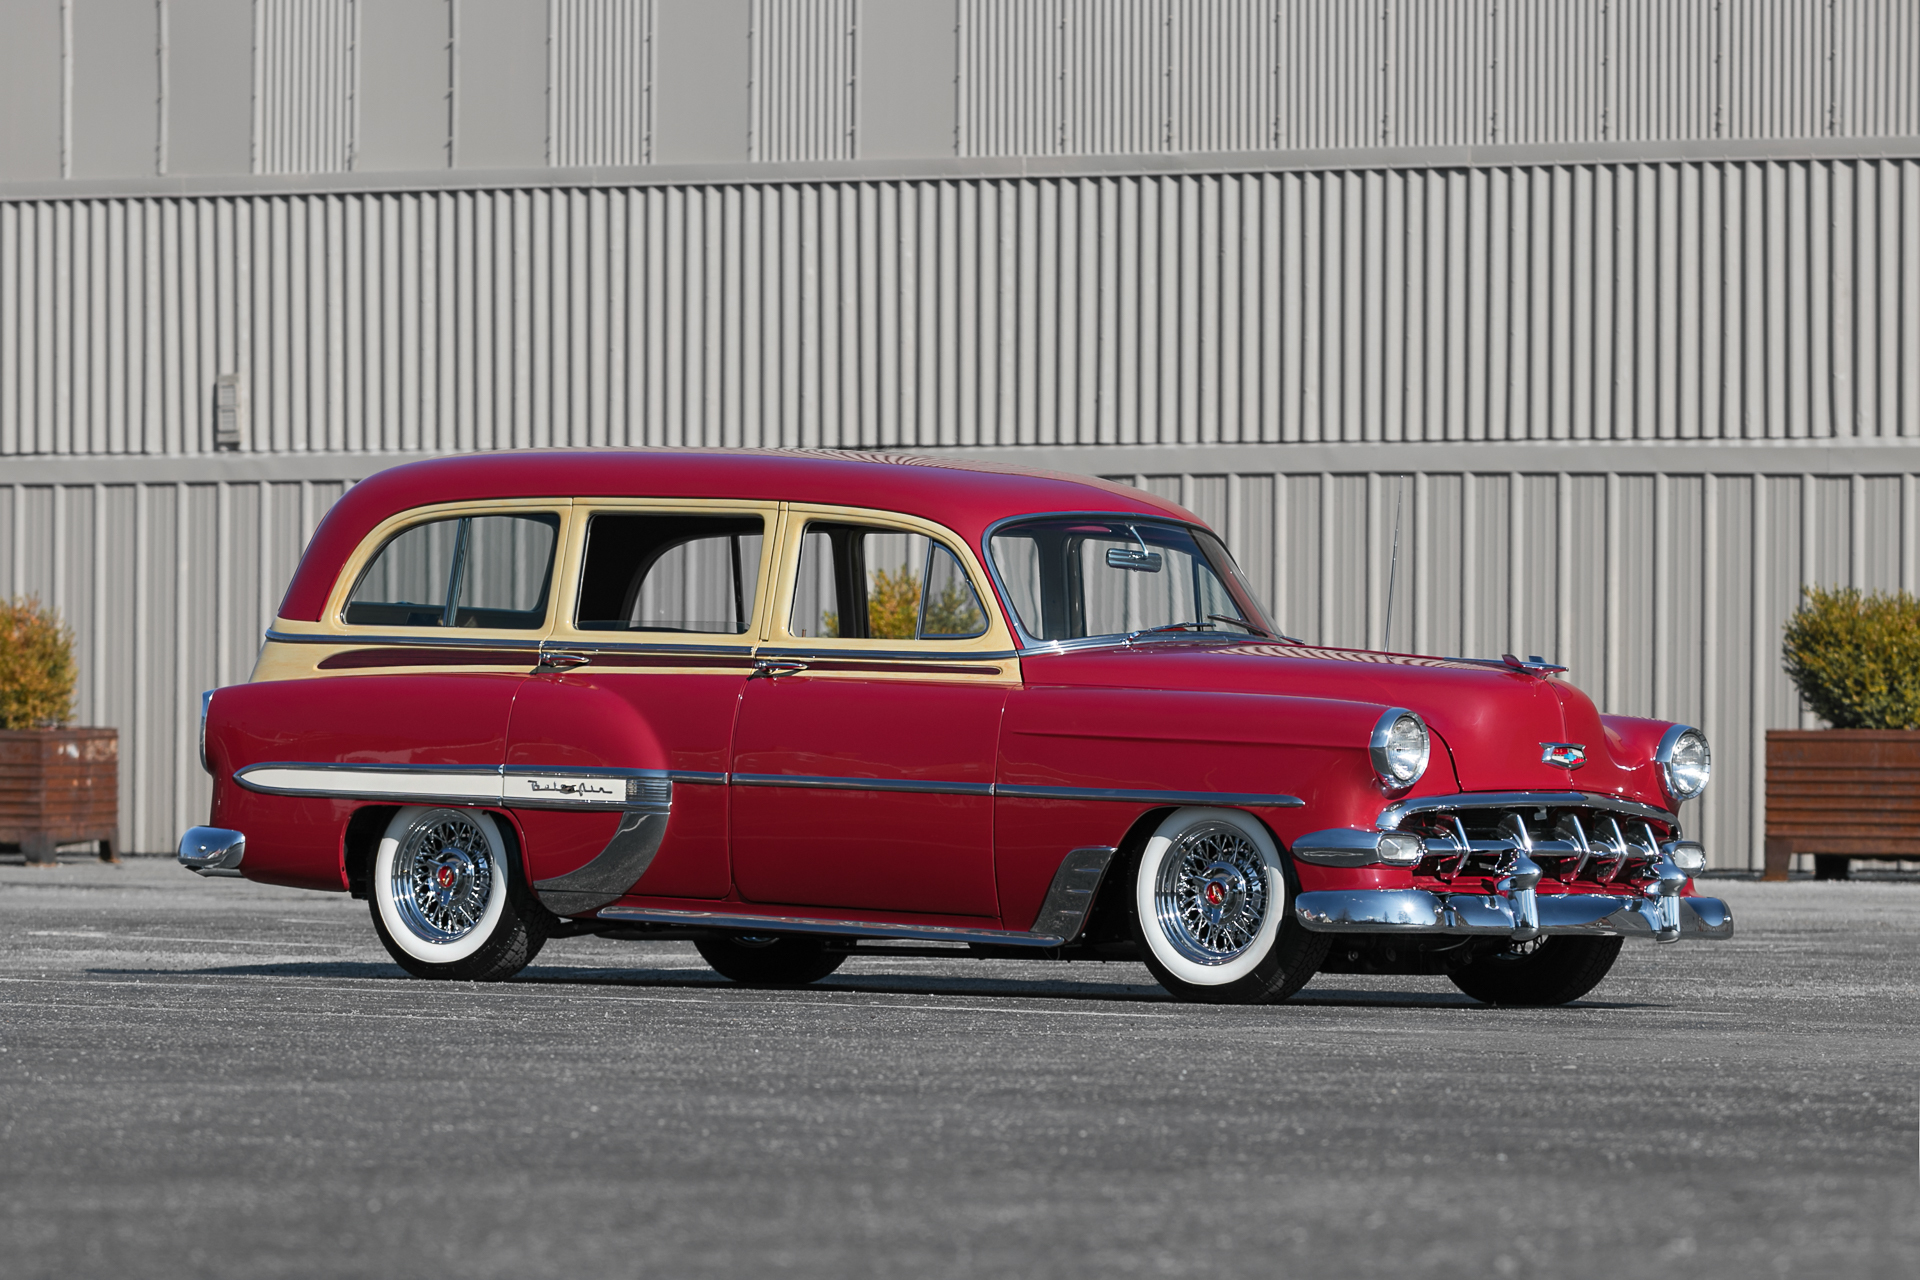 1954 Chevrolet Bel Air Fast Lane Classic Cars Chevy